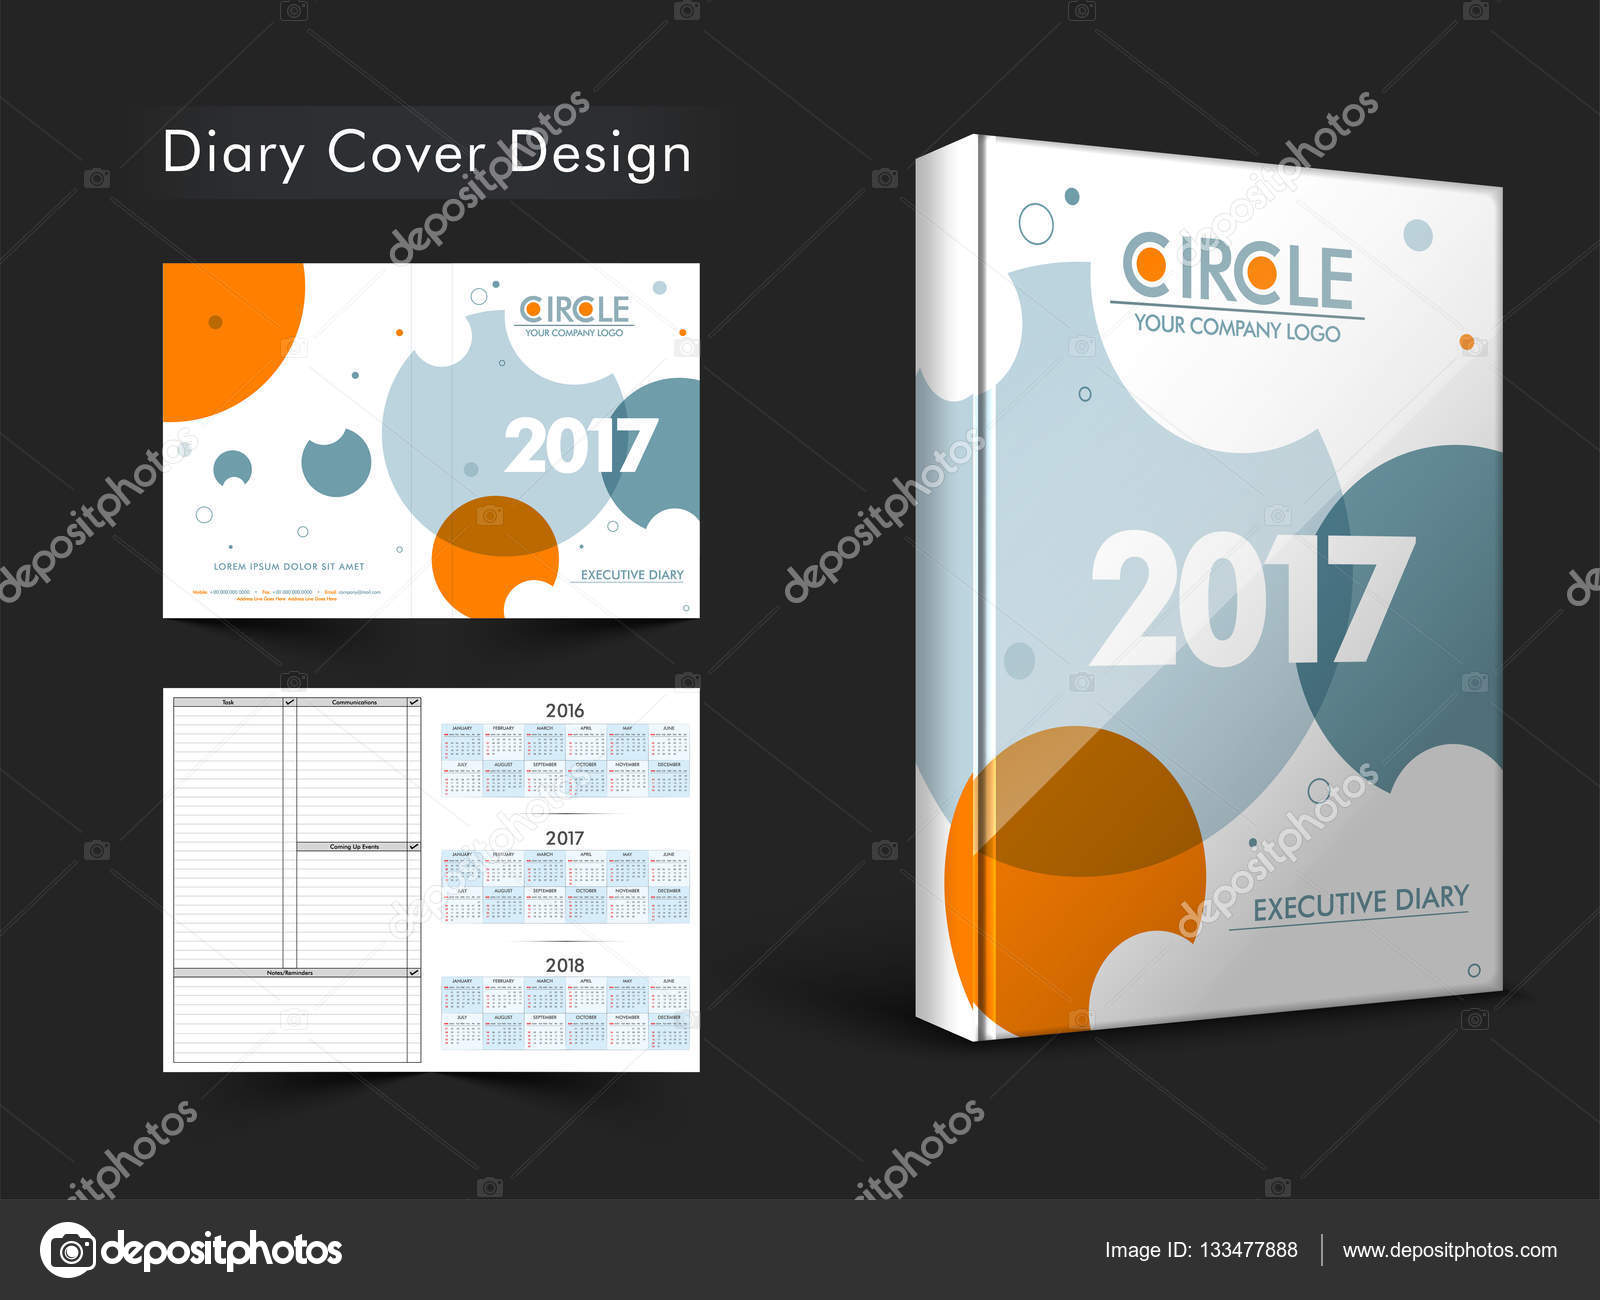 Executive Diary Template Personal Organizer Notebook Or Cover Design For The Year 2017 Vector By Alliesinteract